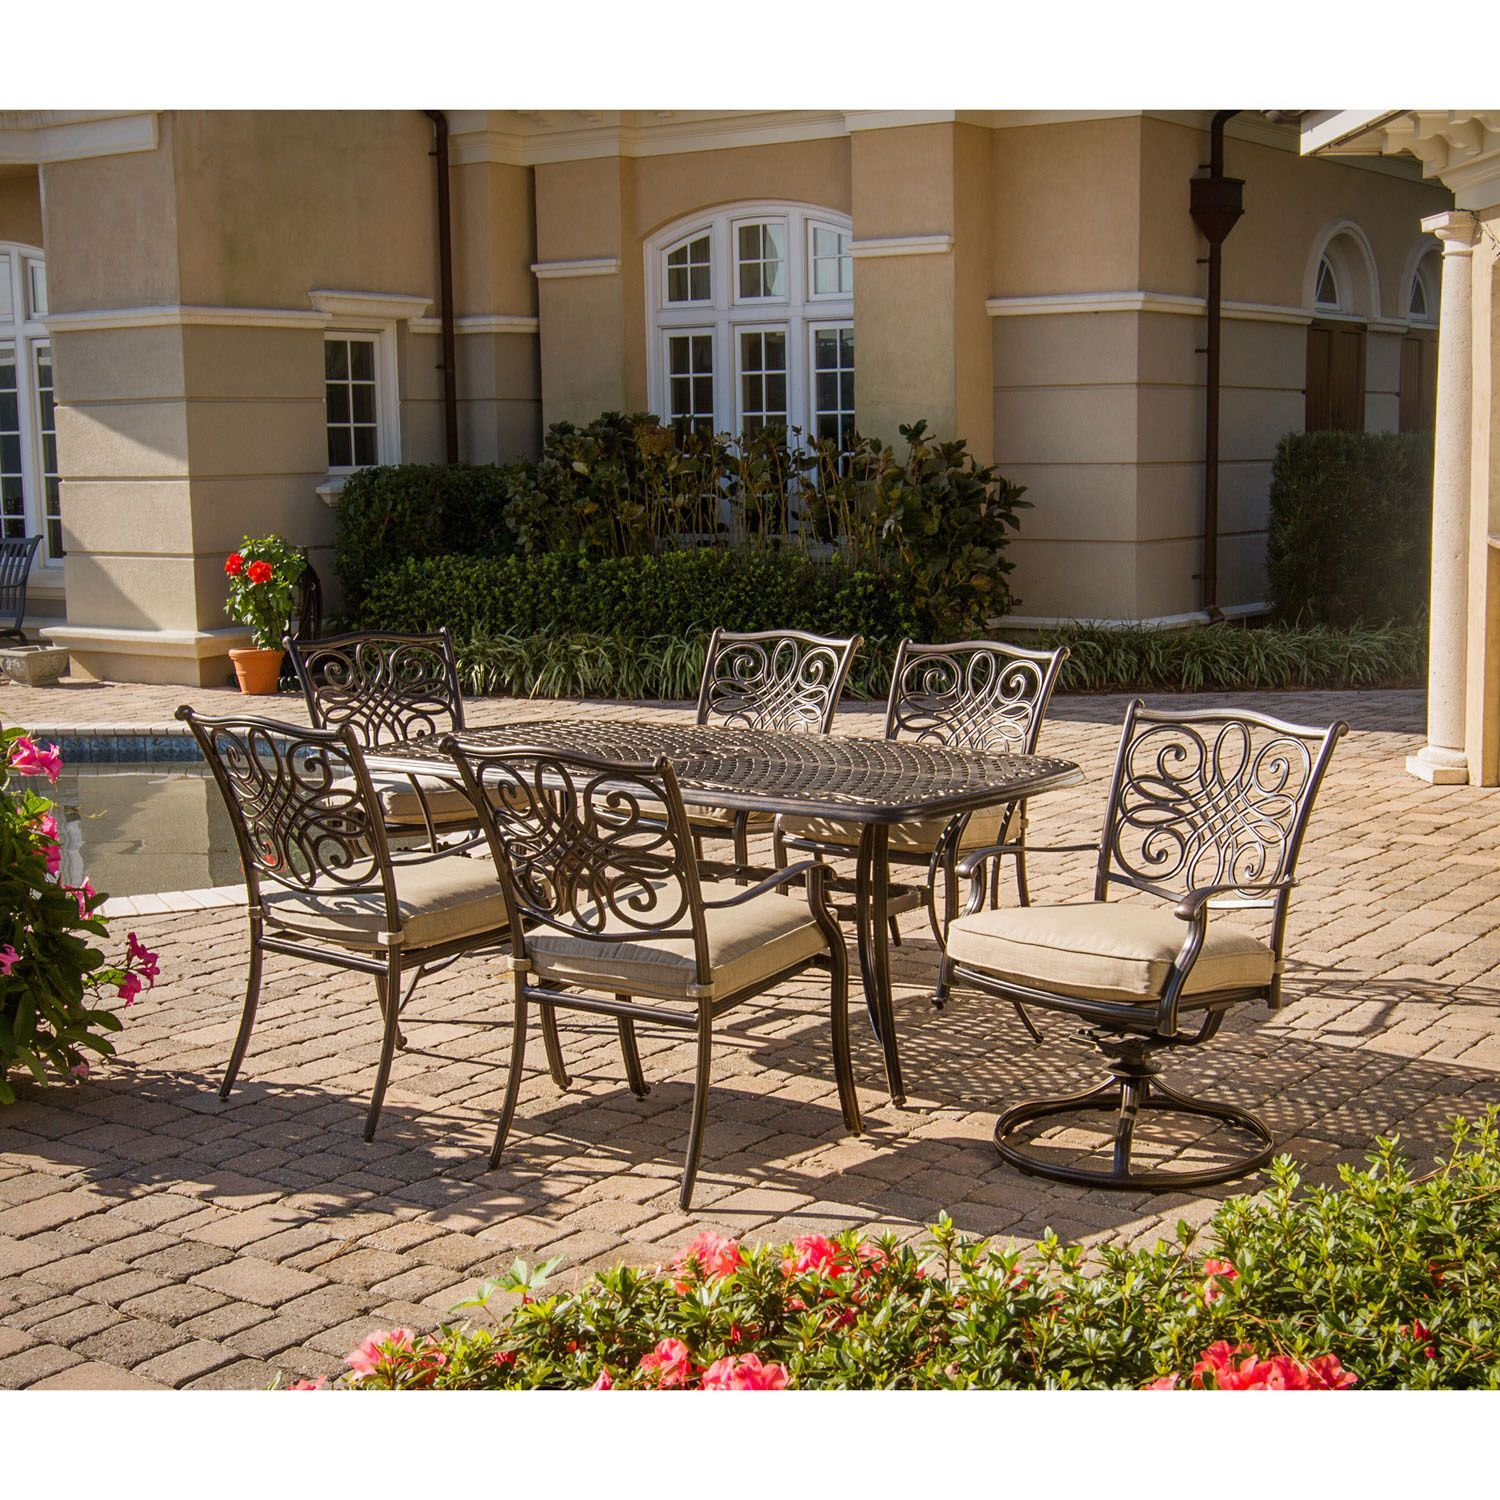 Hanover traditions 5 piece outdoor fire pit lounge set aluminum tan brown size 5 piece sets patio furniture